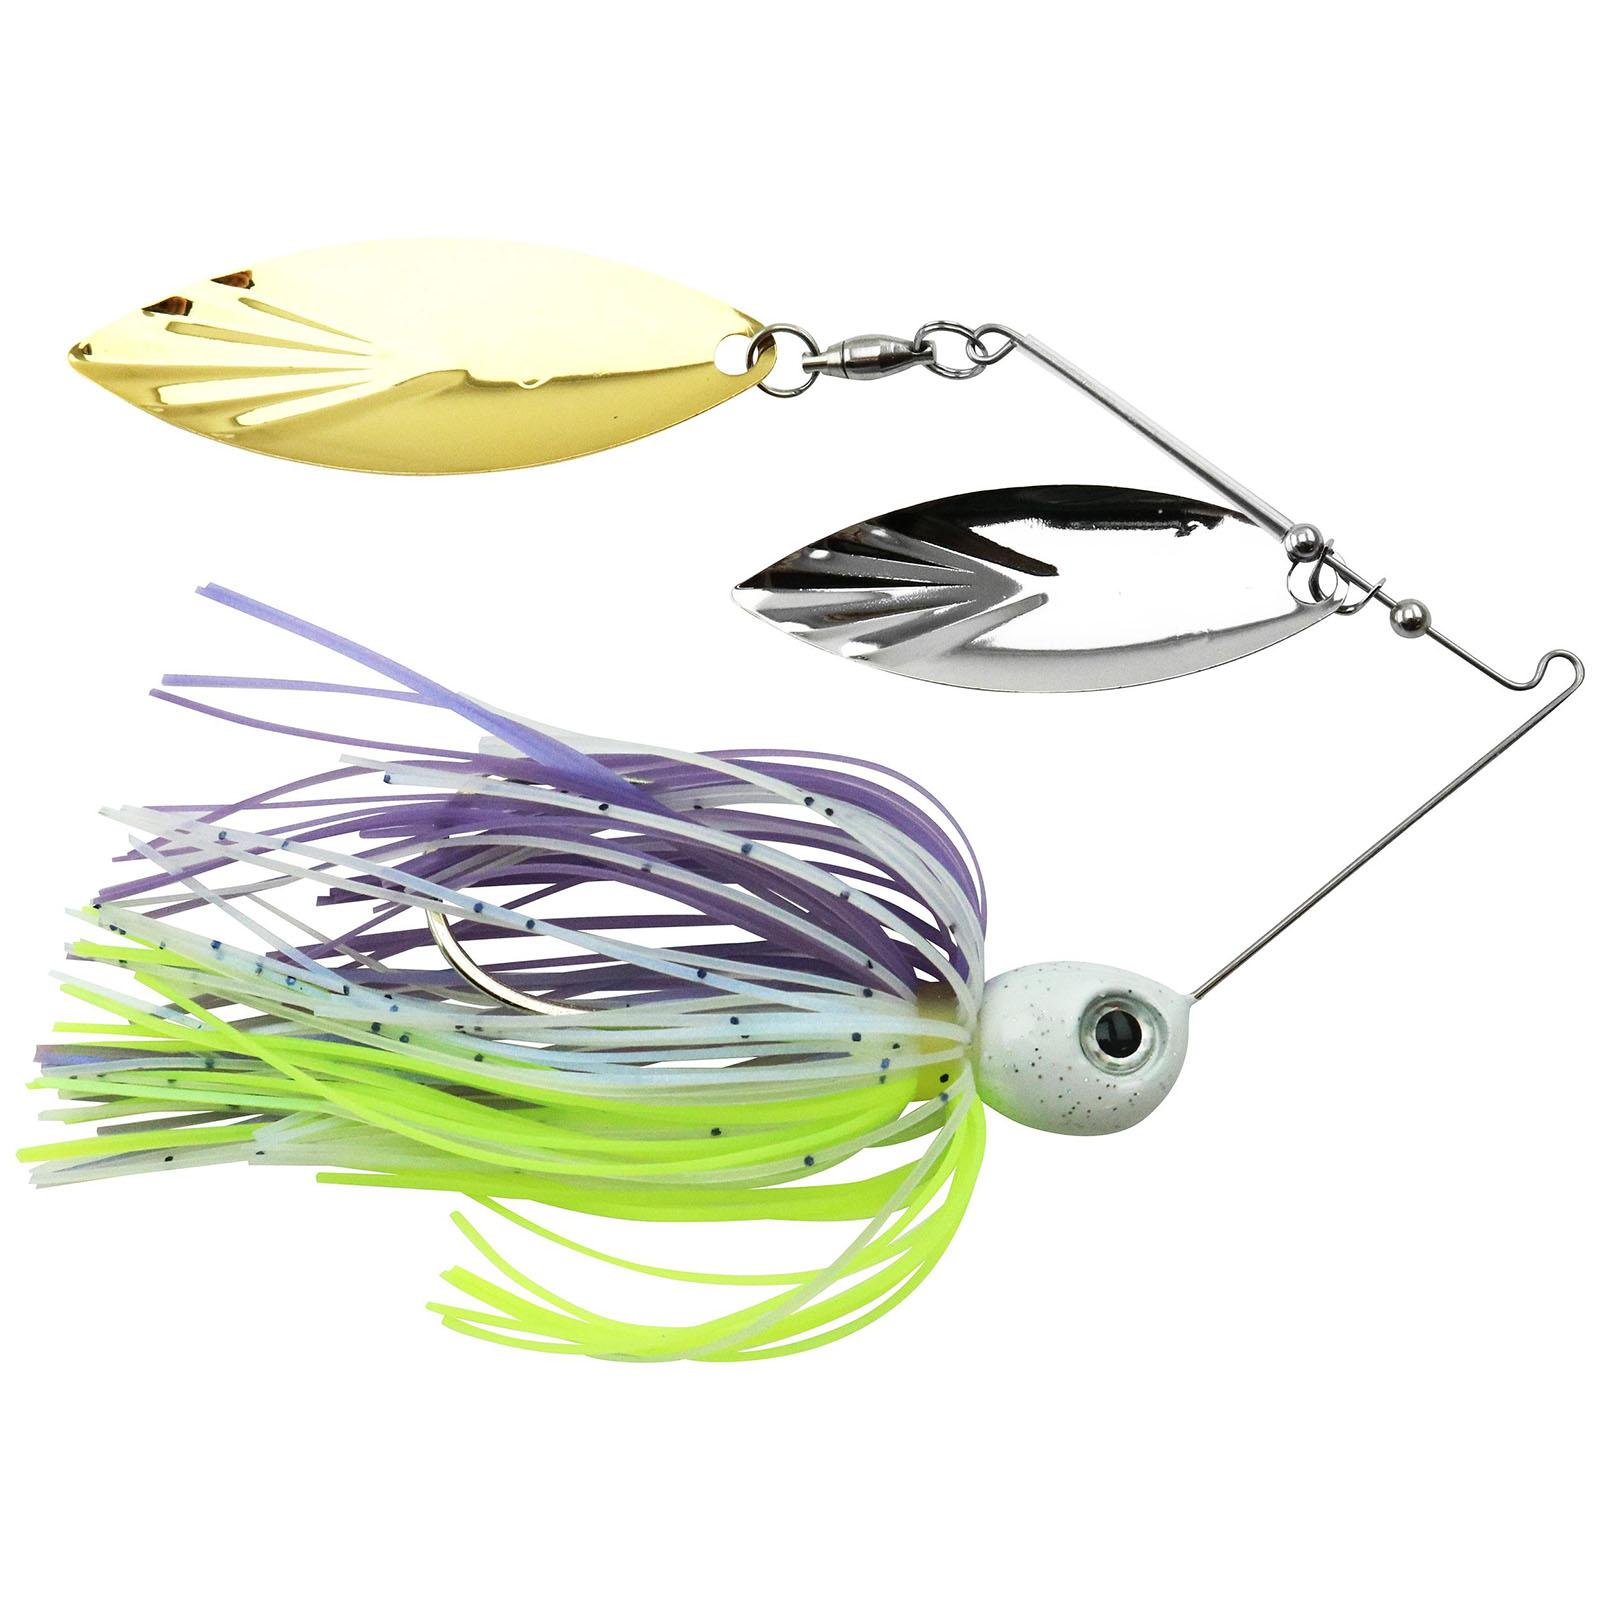 Accent River Special Double Willow Spinnerbait Color Nickel/Gold Blades - Purple Crush Skirt Weight 3/8 oz thumbnail